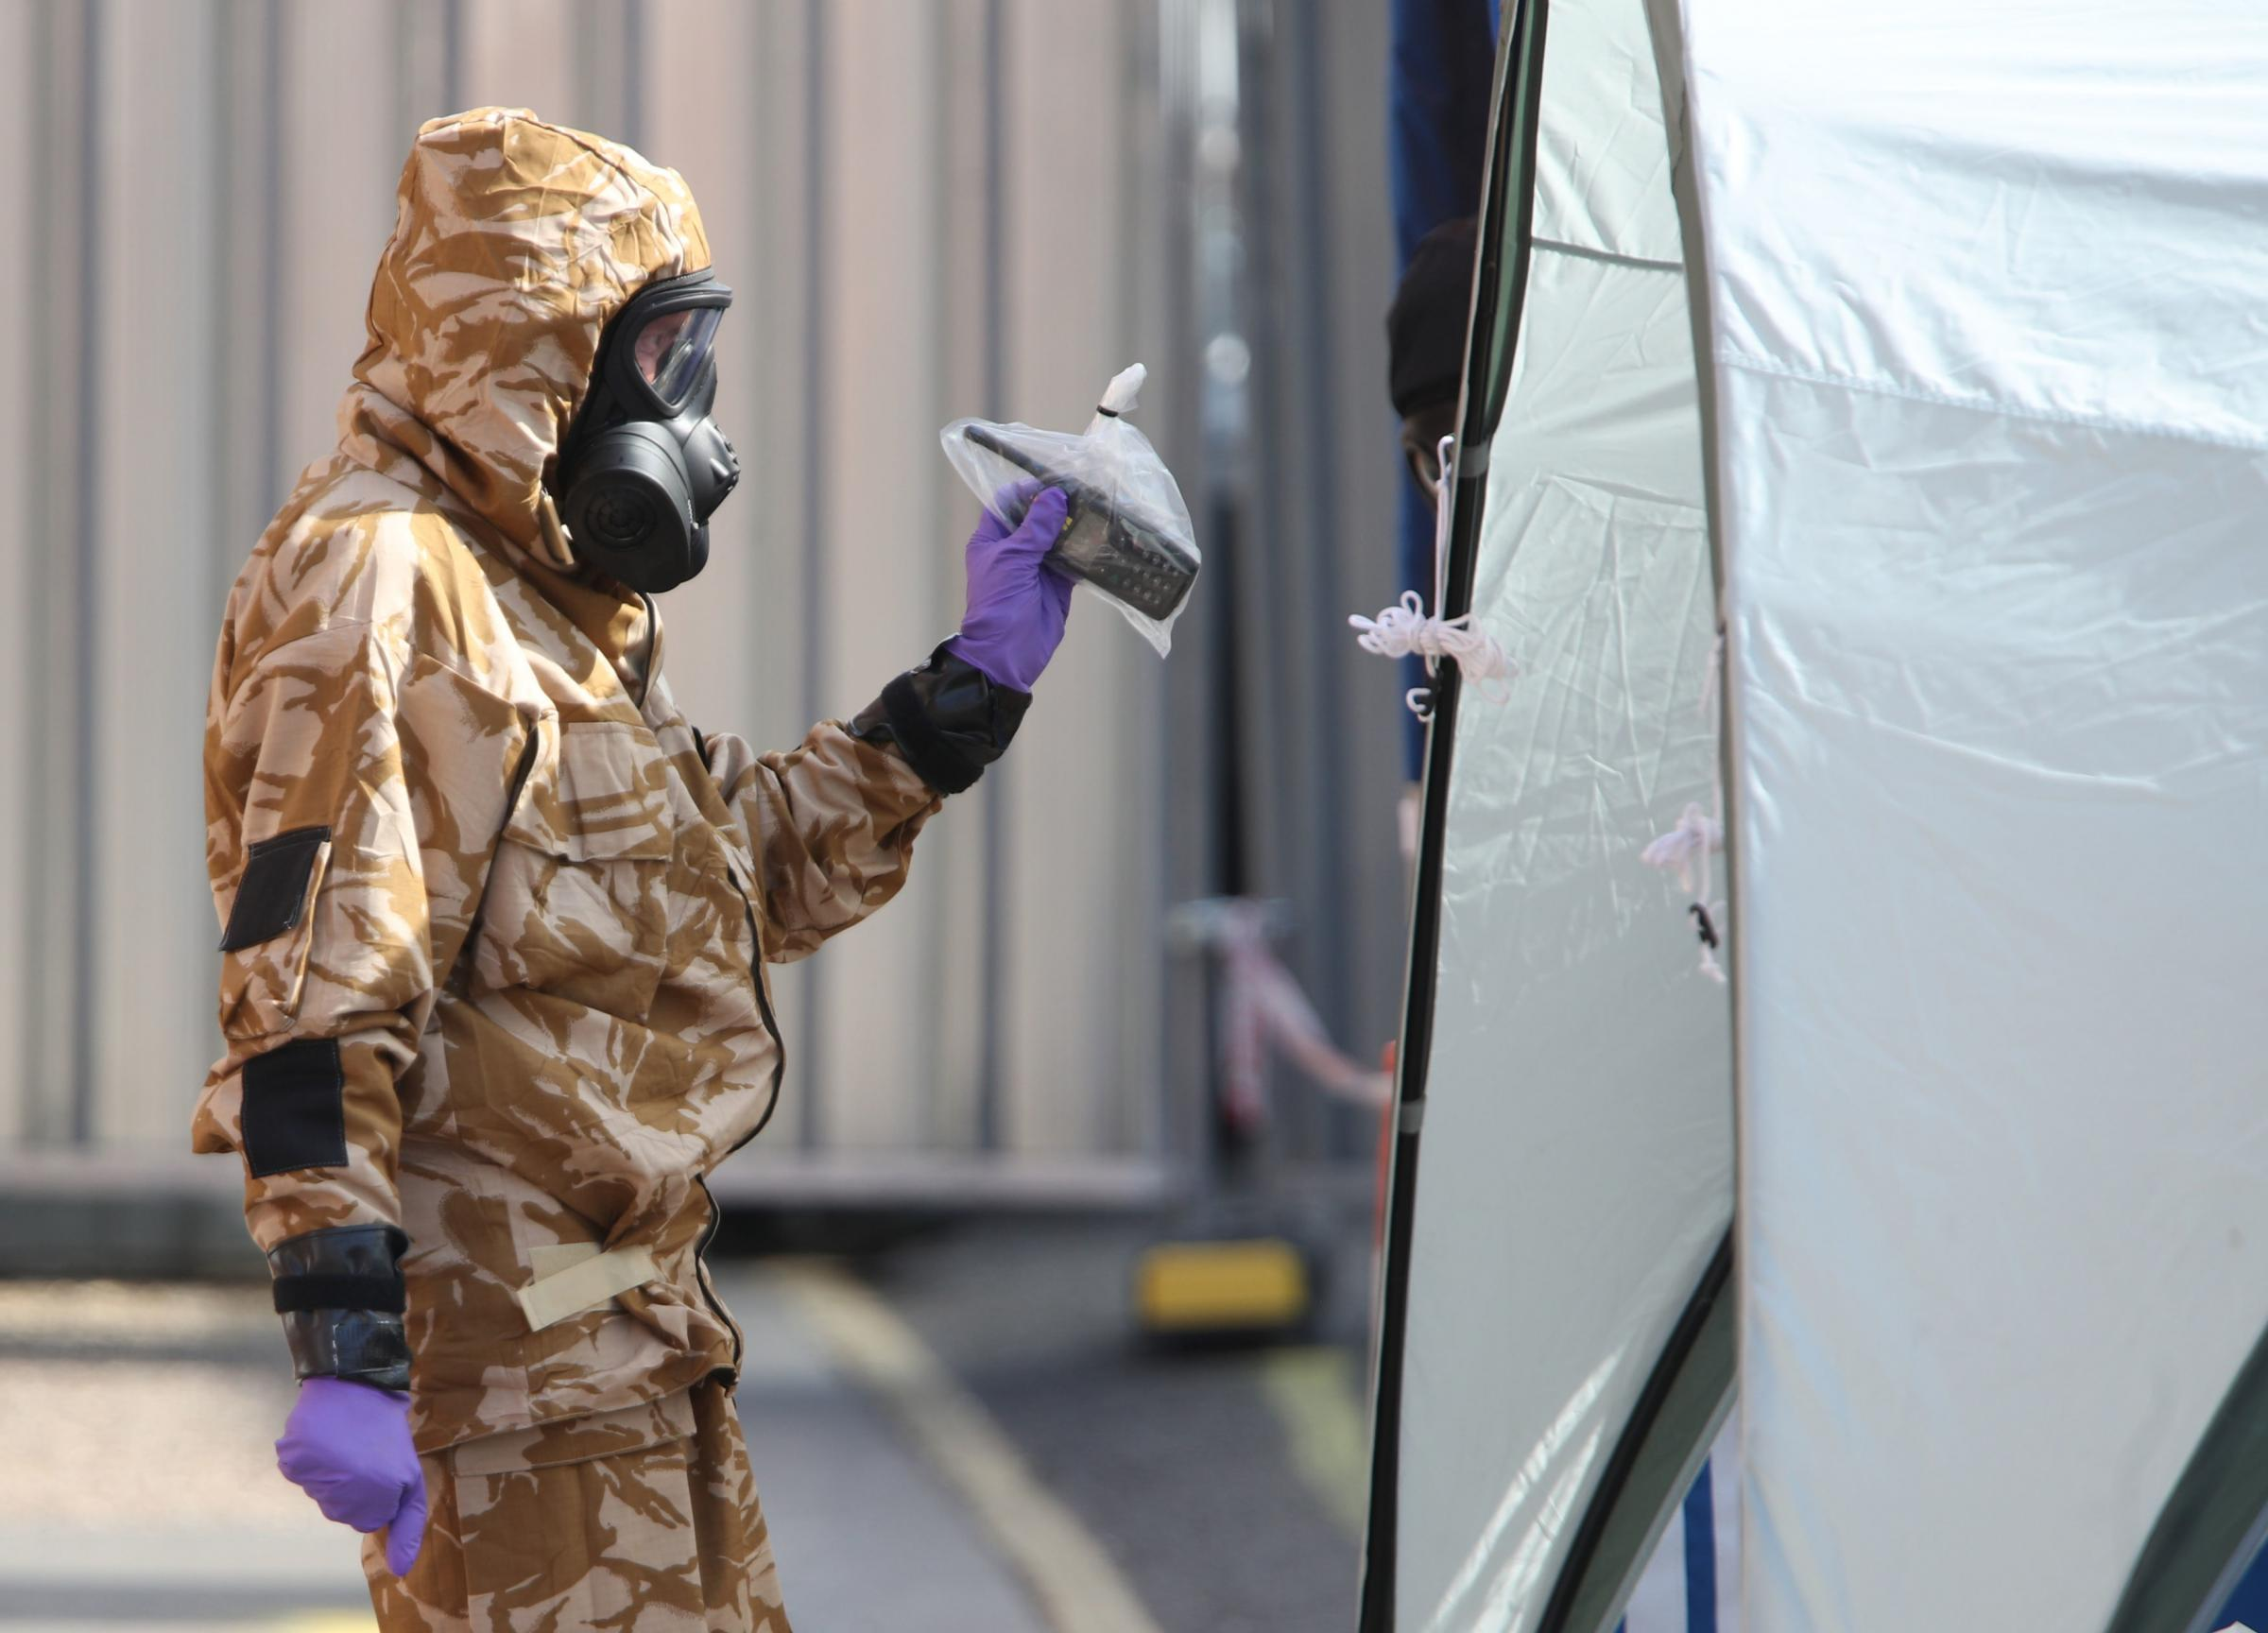 Second Wiltshire police officer contaminated by Novichok